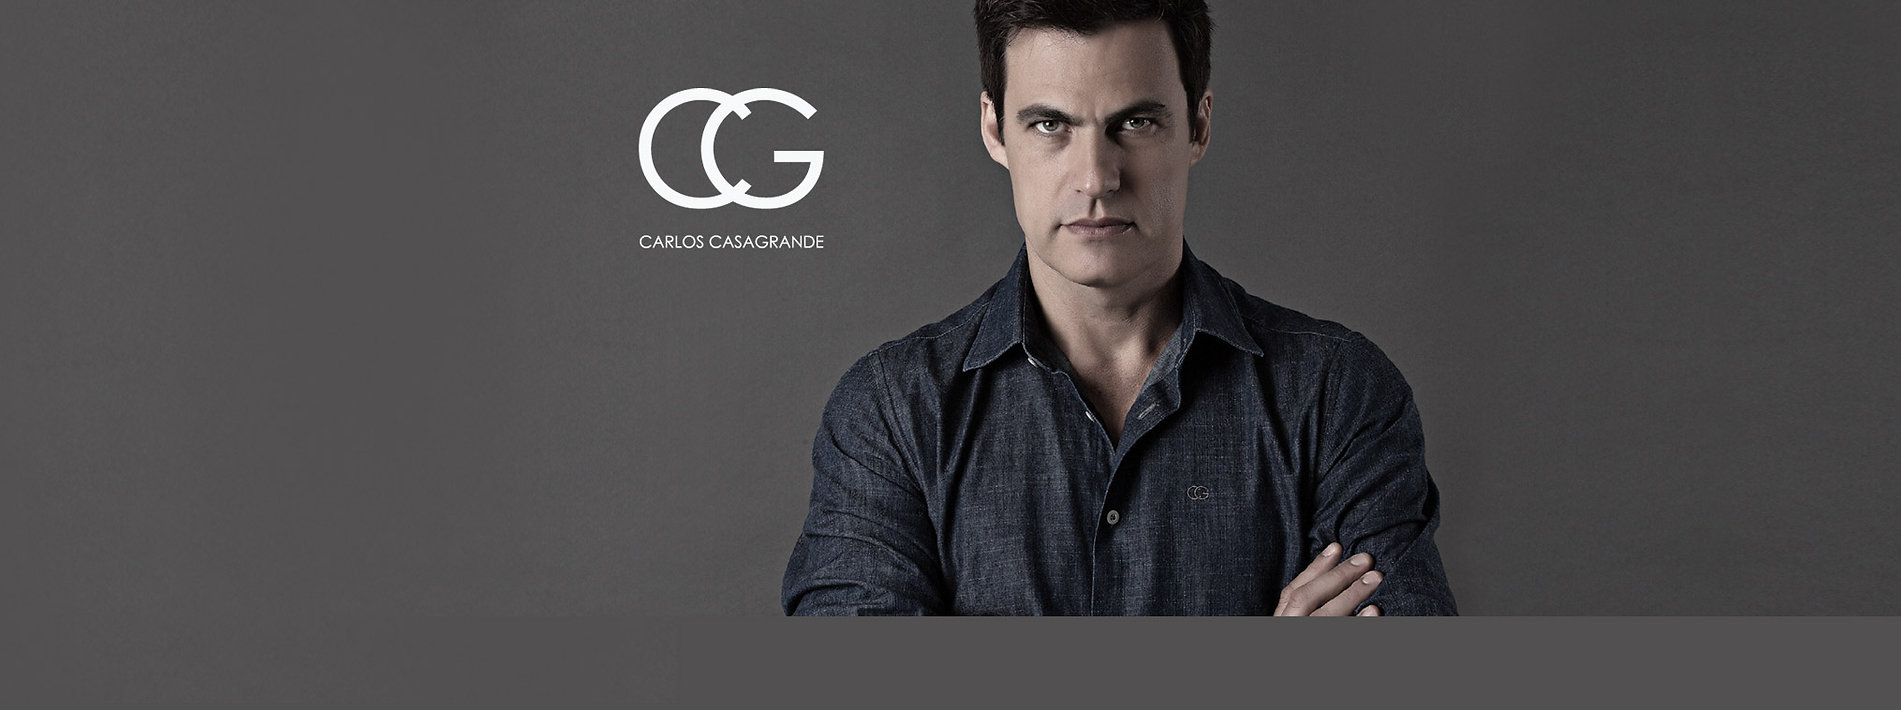 Brand do ator e modelo Carlos Casagrande